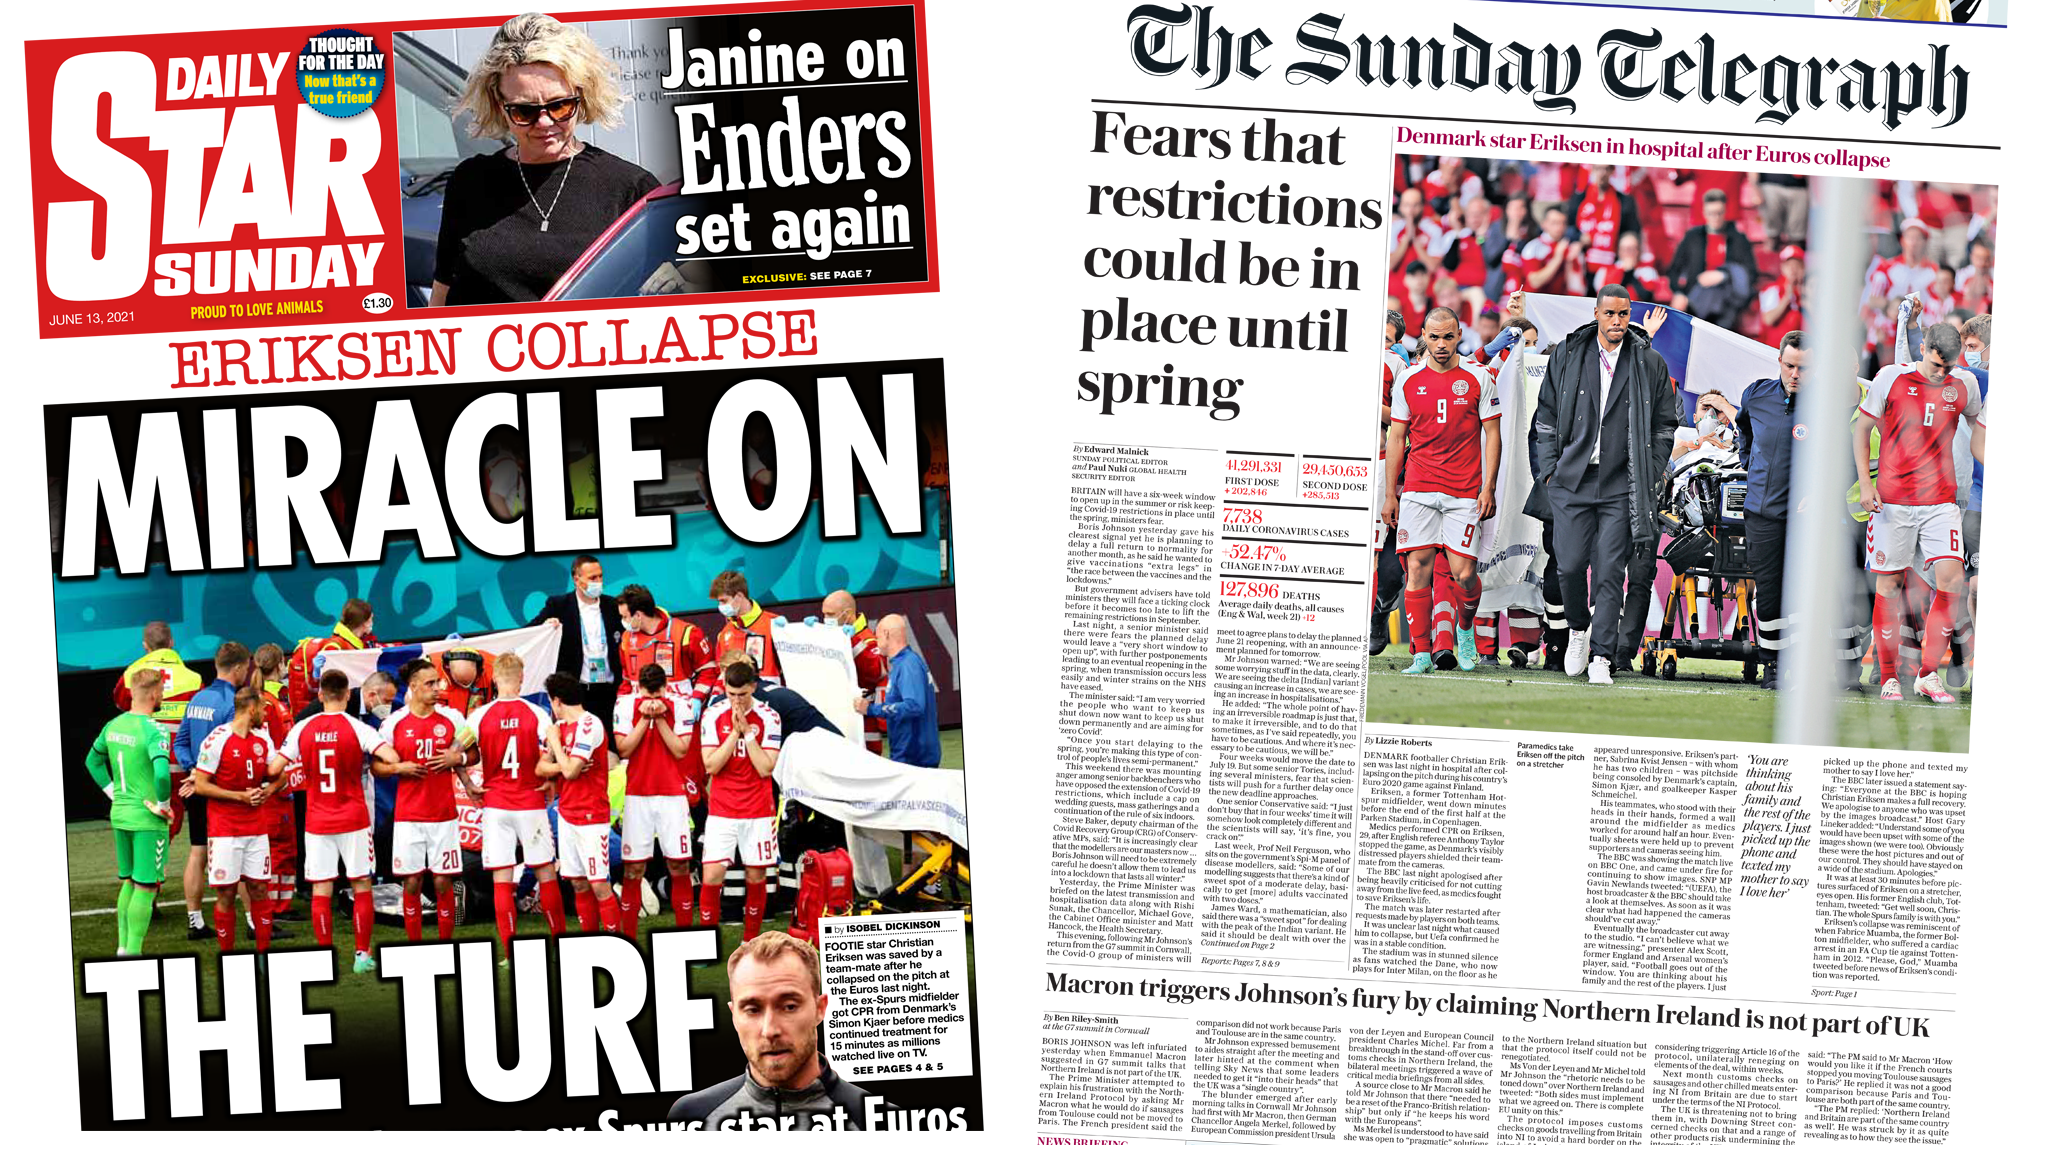 Daily Star Sunday front and Sunday Telegraph front pages